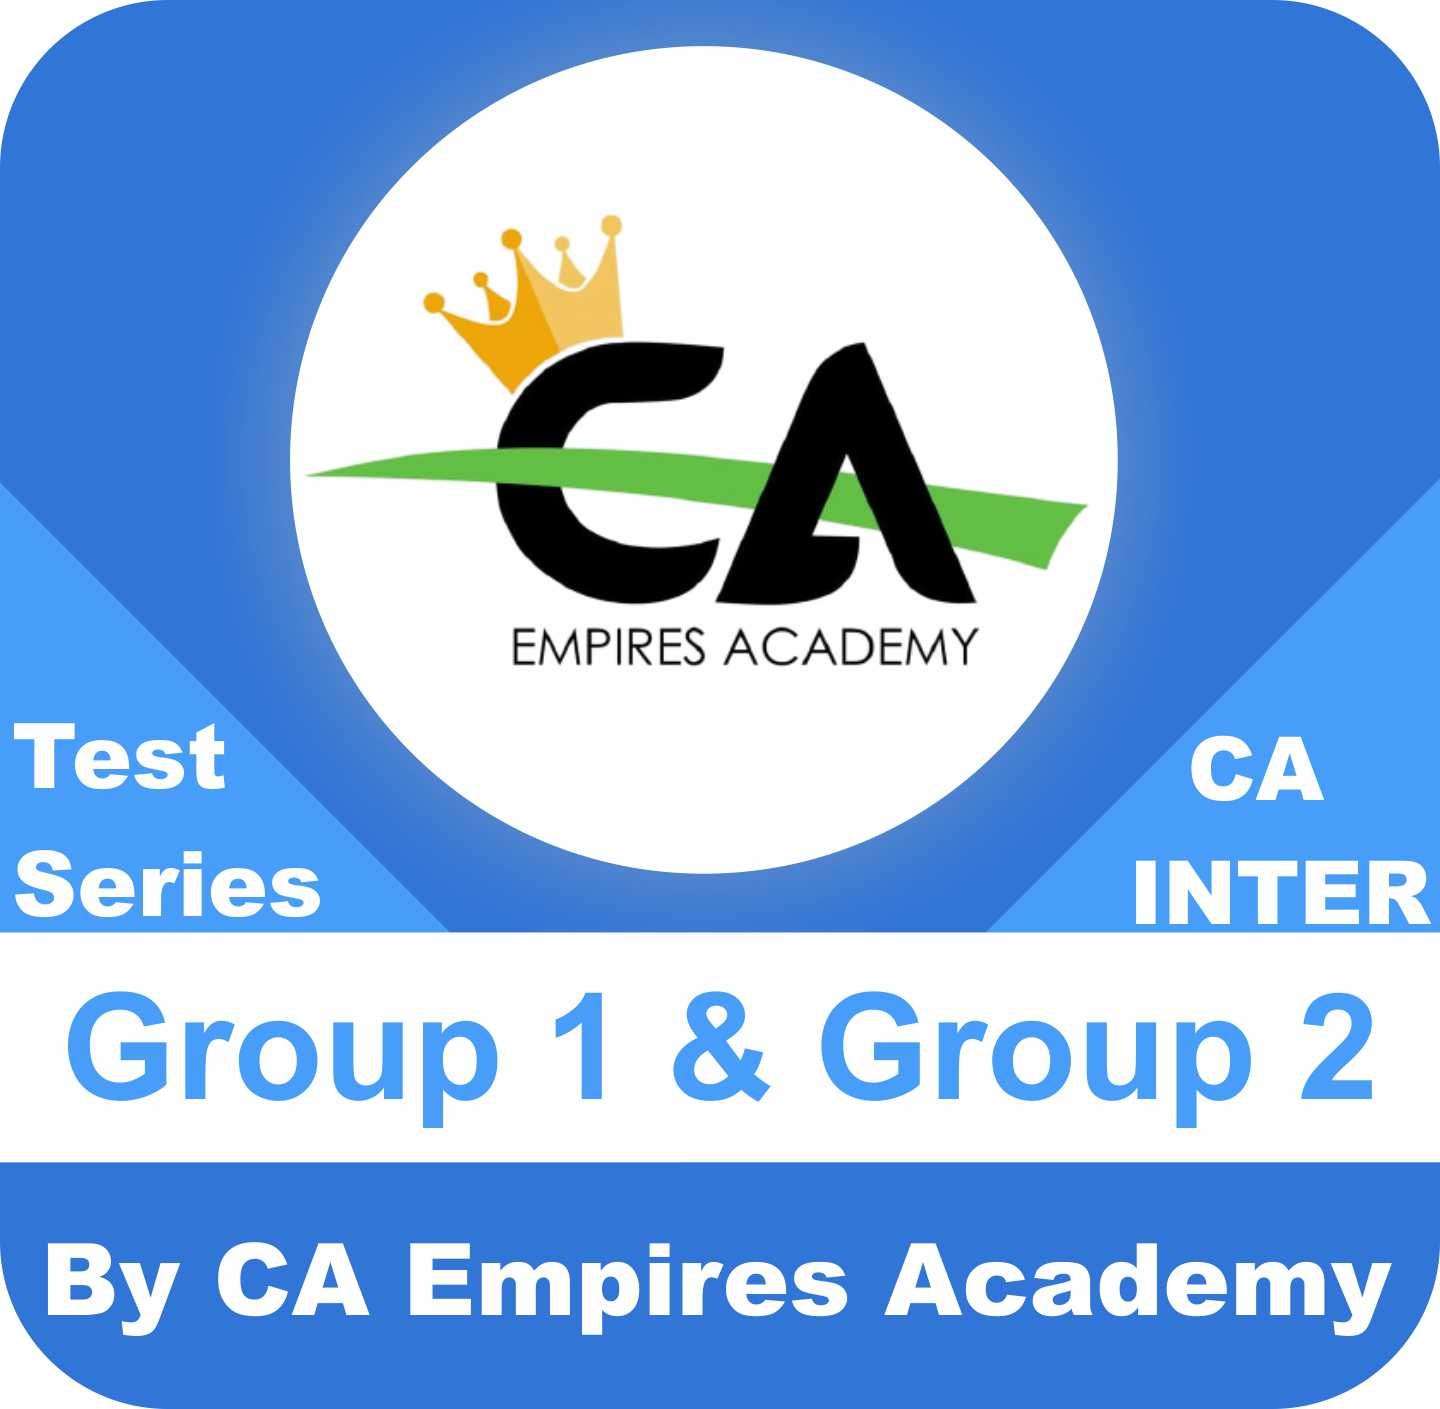 CA Inter Group One and Group Two Test Series in Bronze Plan by CA Empires Academy